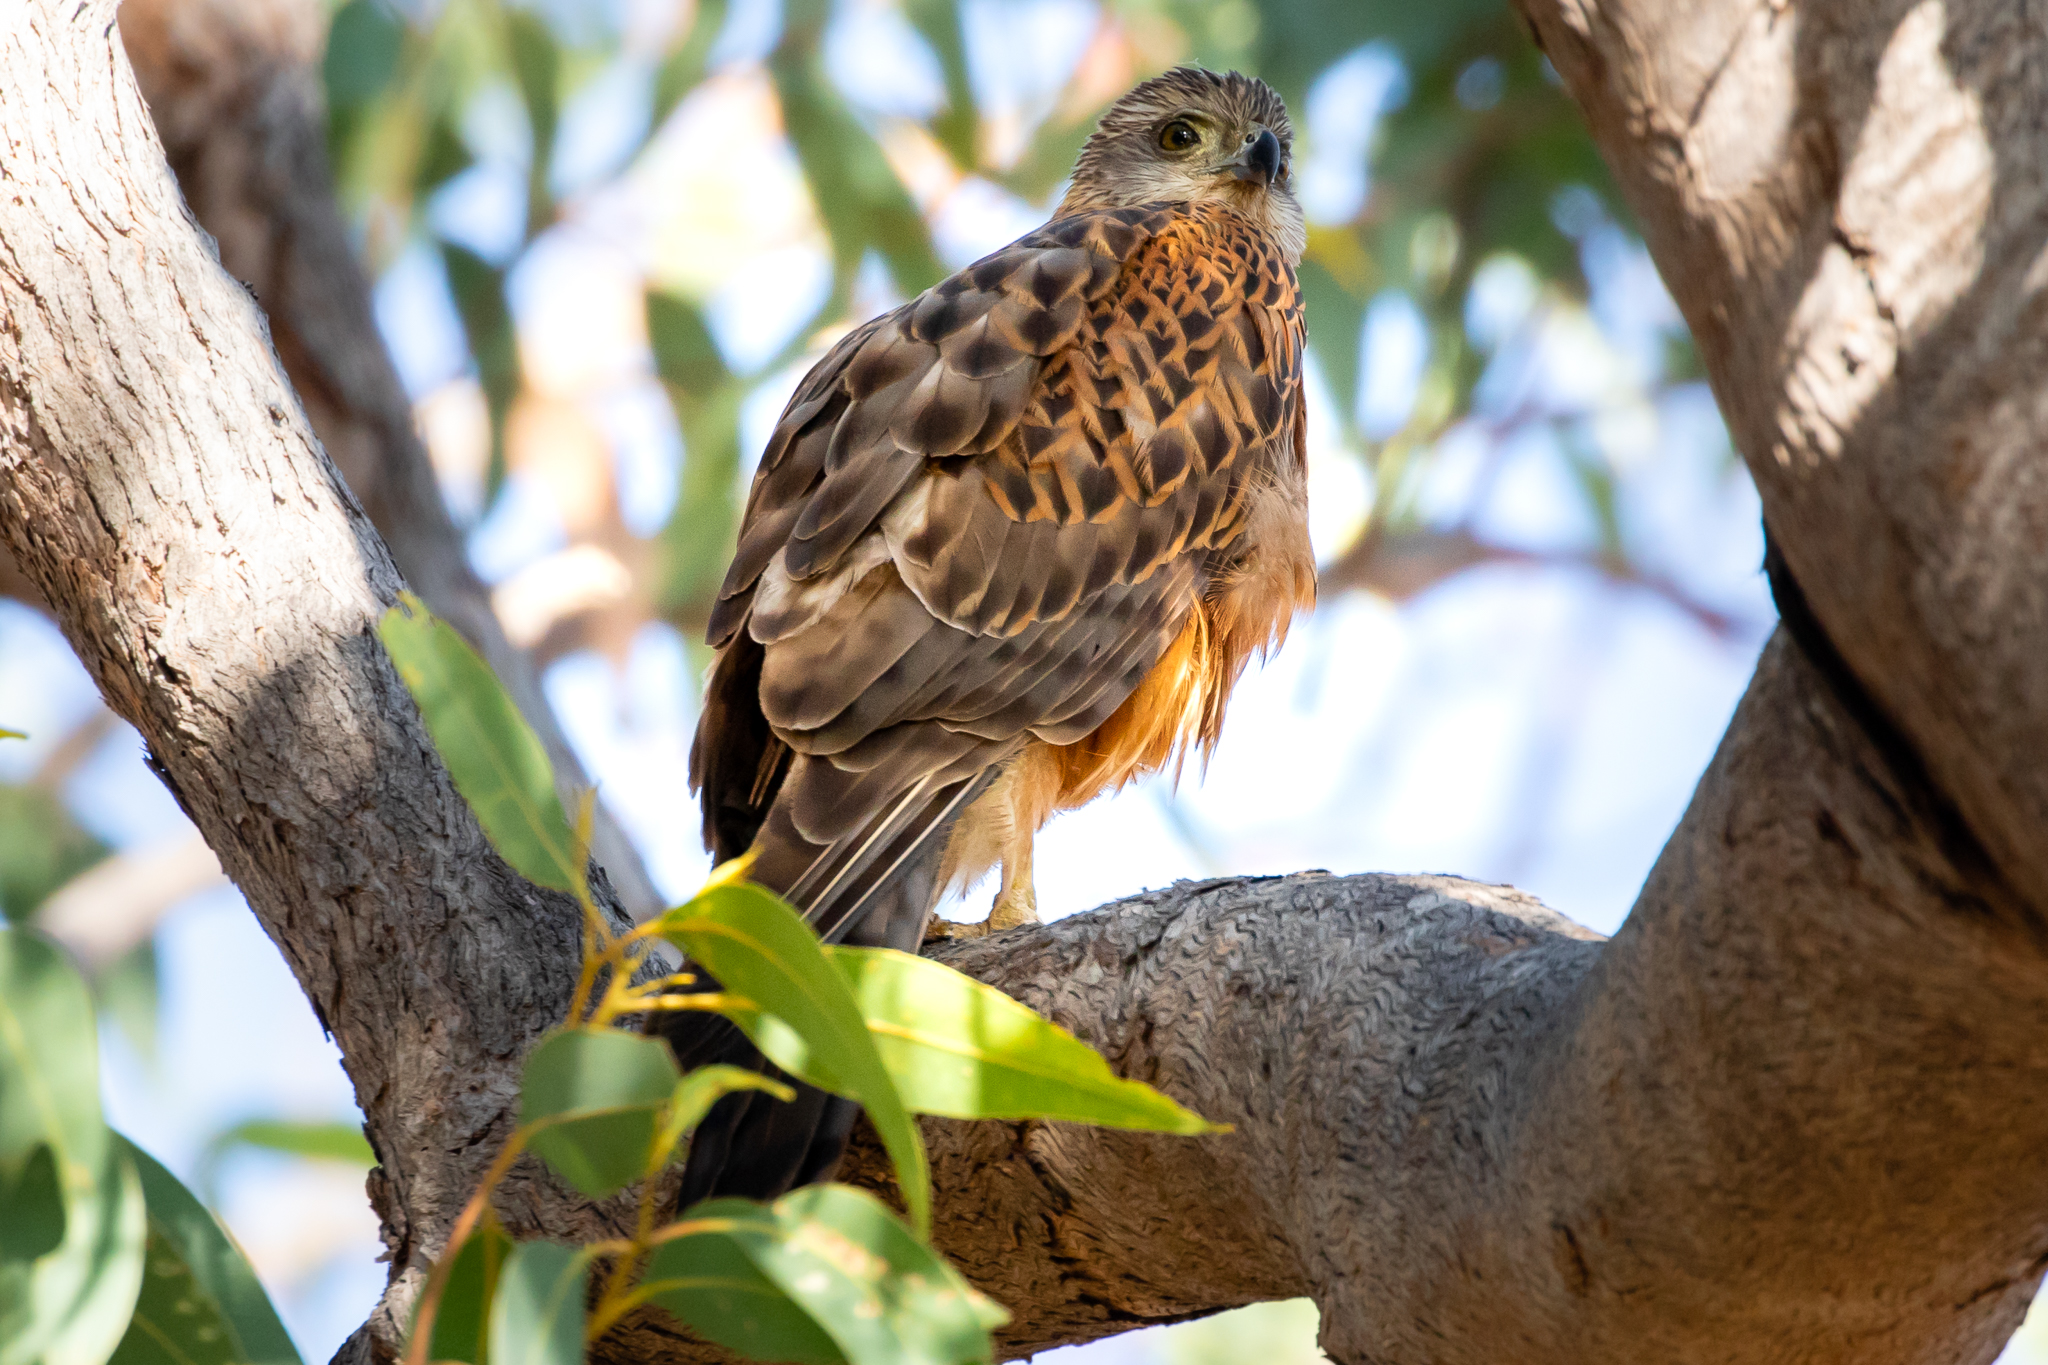 The rare Red Goshawk. They feed on small birds and even large birds such as Brush-turkeys and Kookaburras.